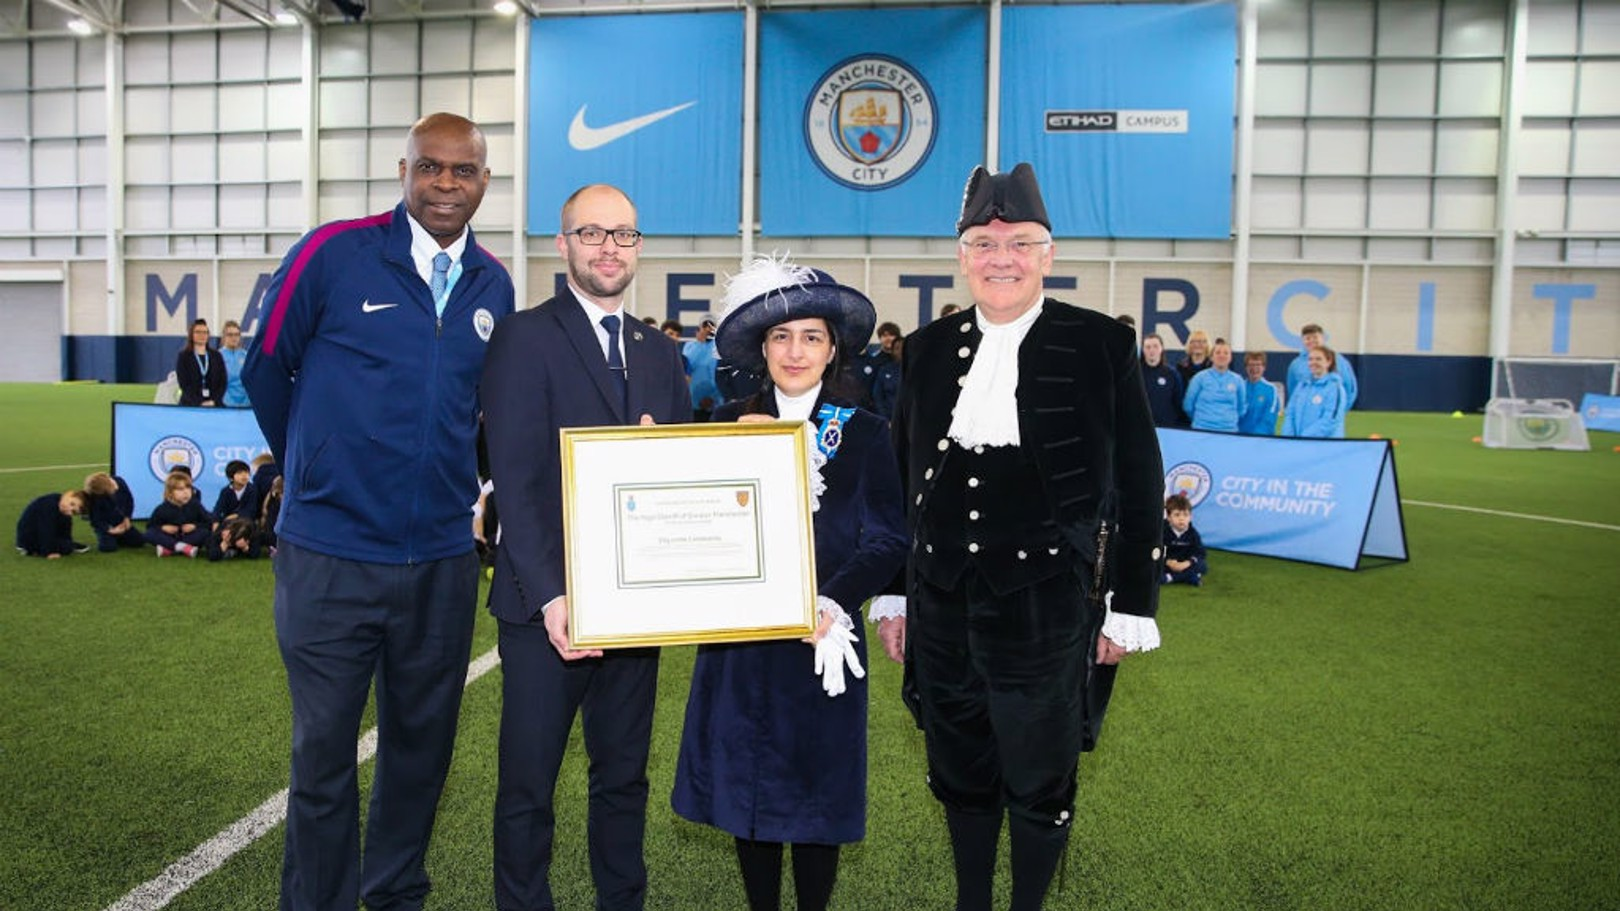 CITC commended by Greater Manchester High Sheriff